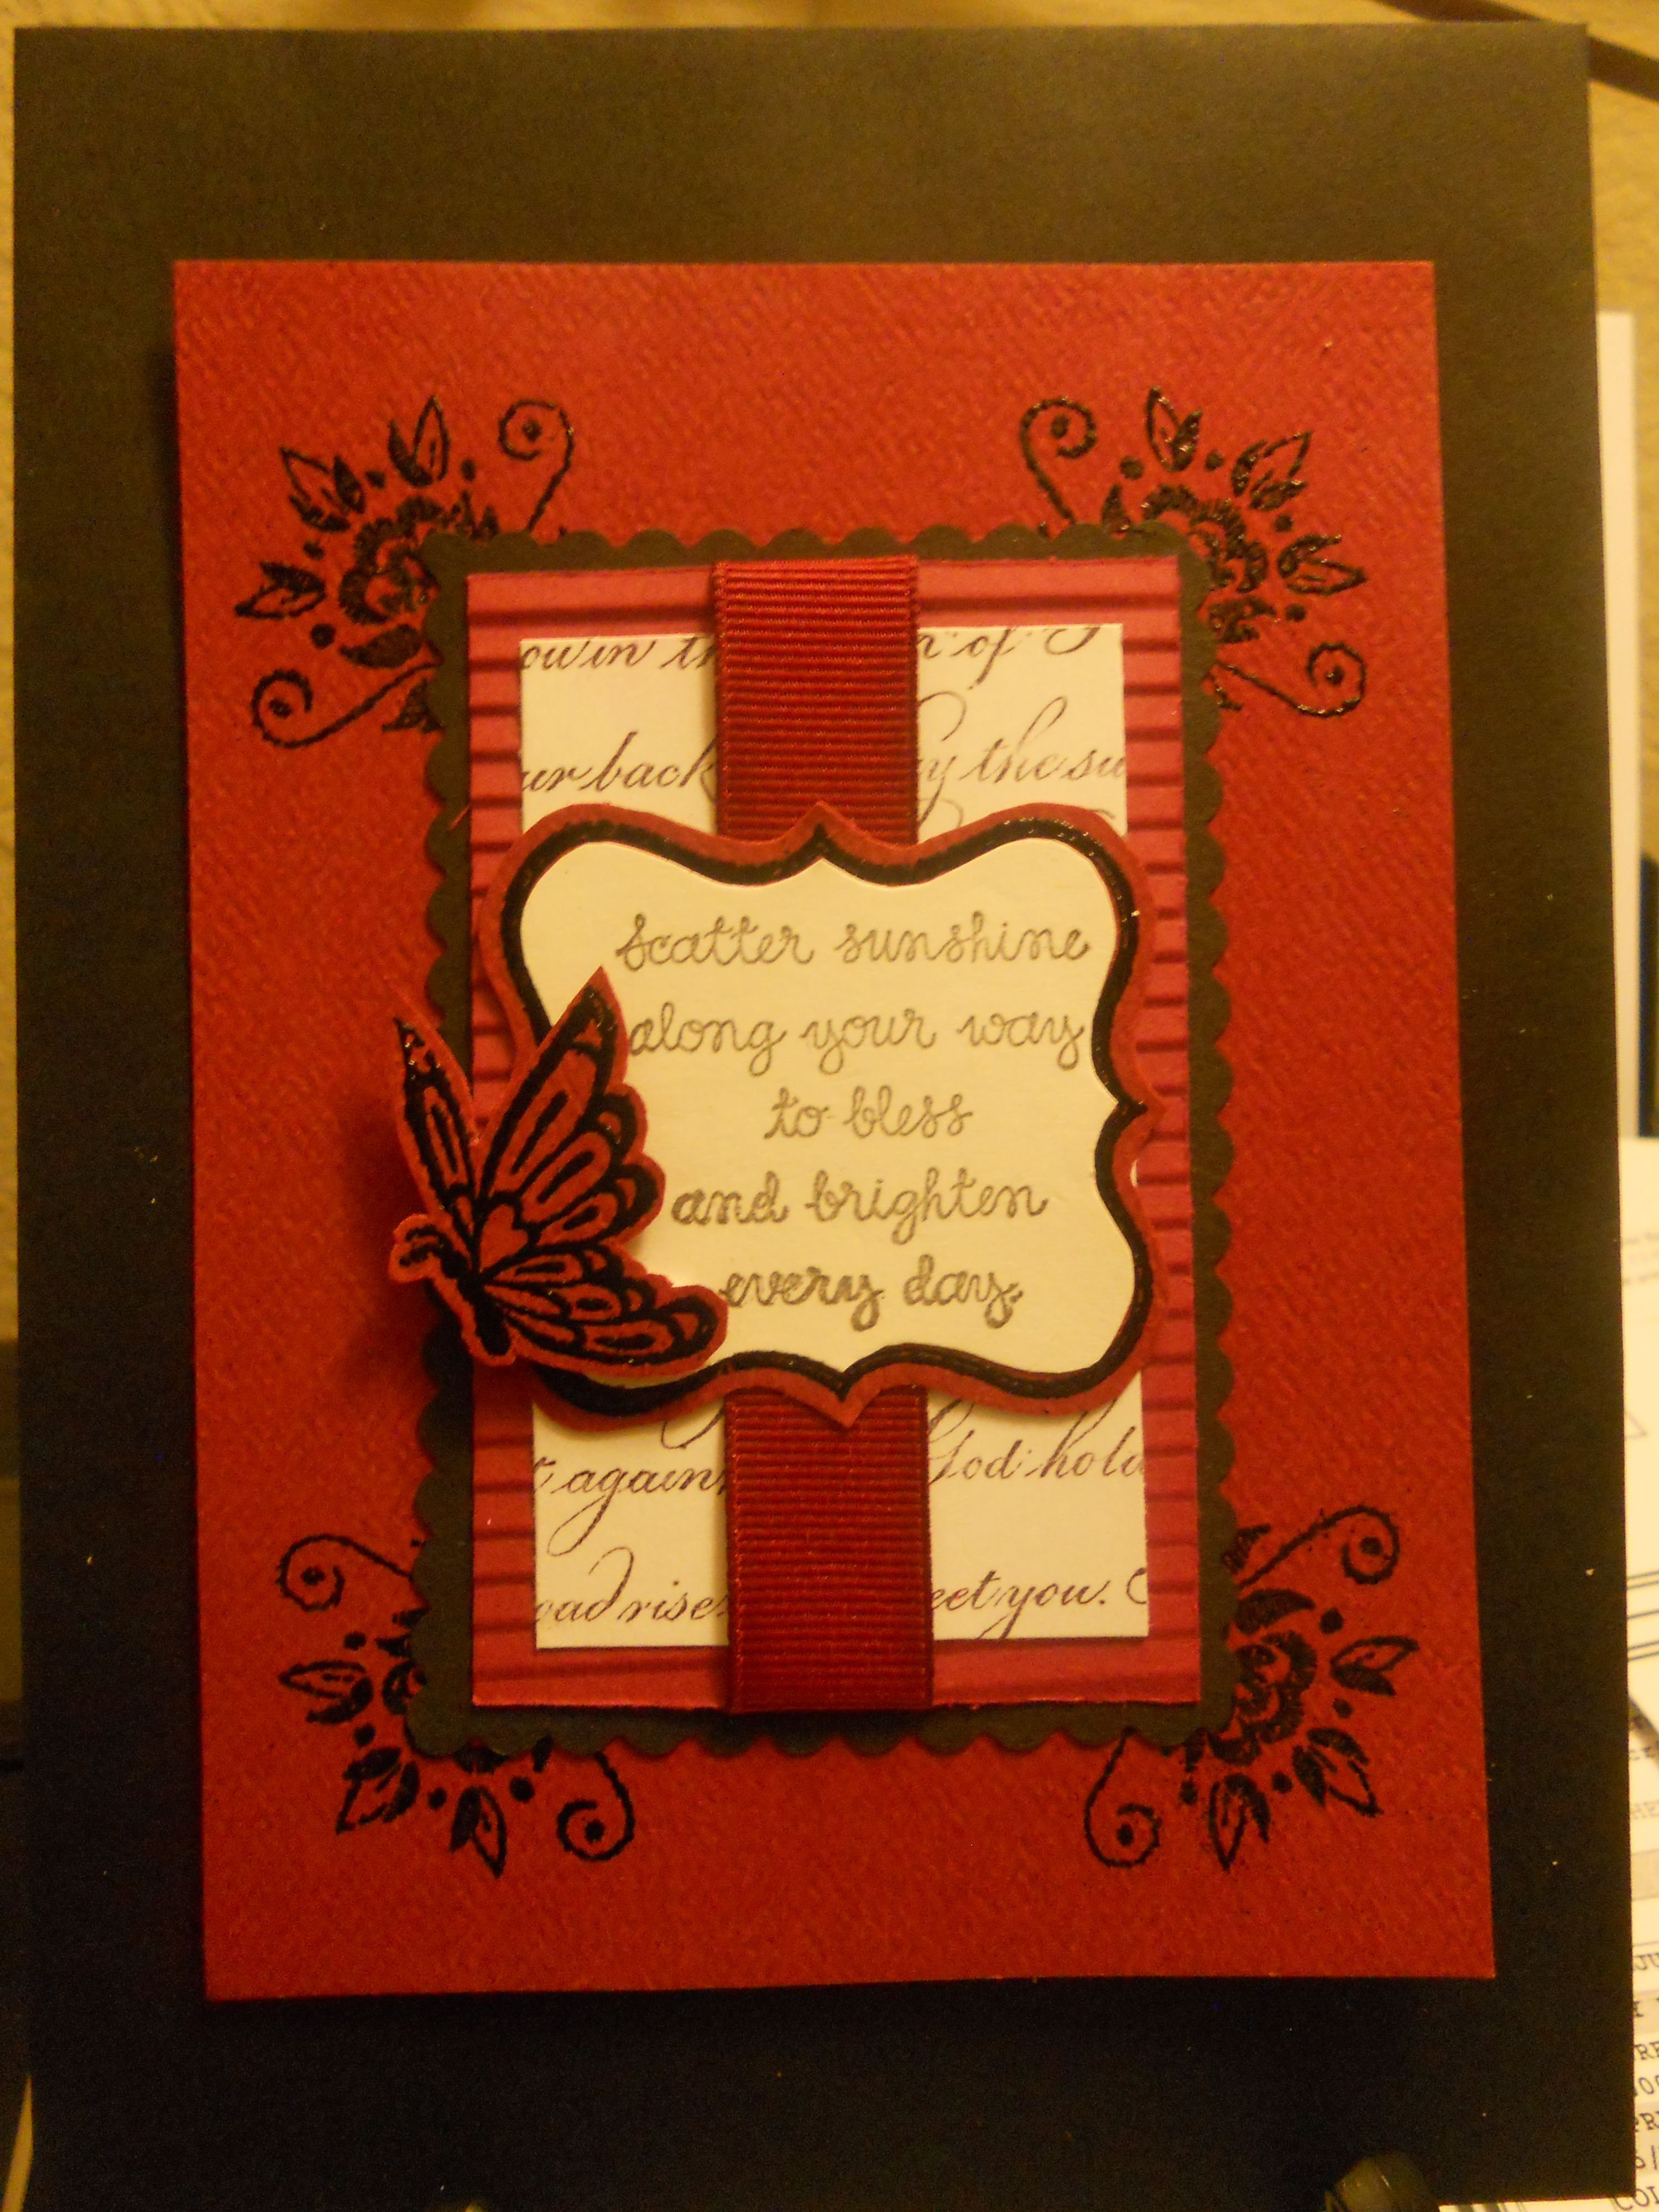 Playing around with some scraps again good card for many occasions